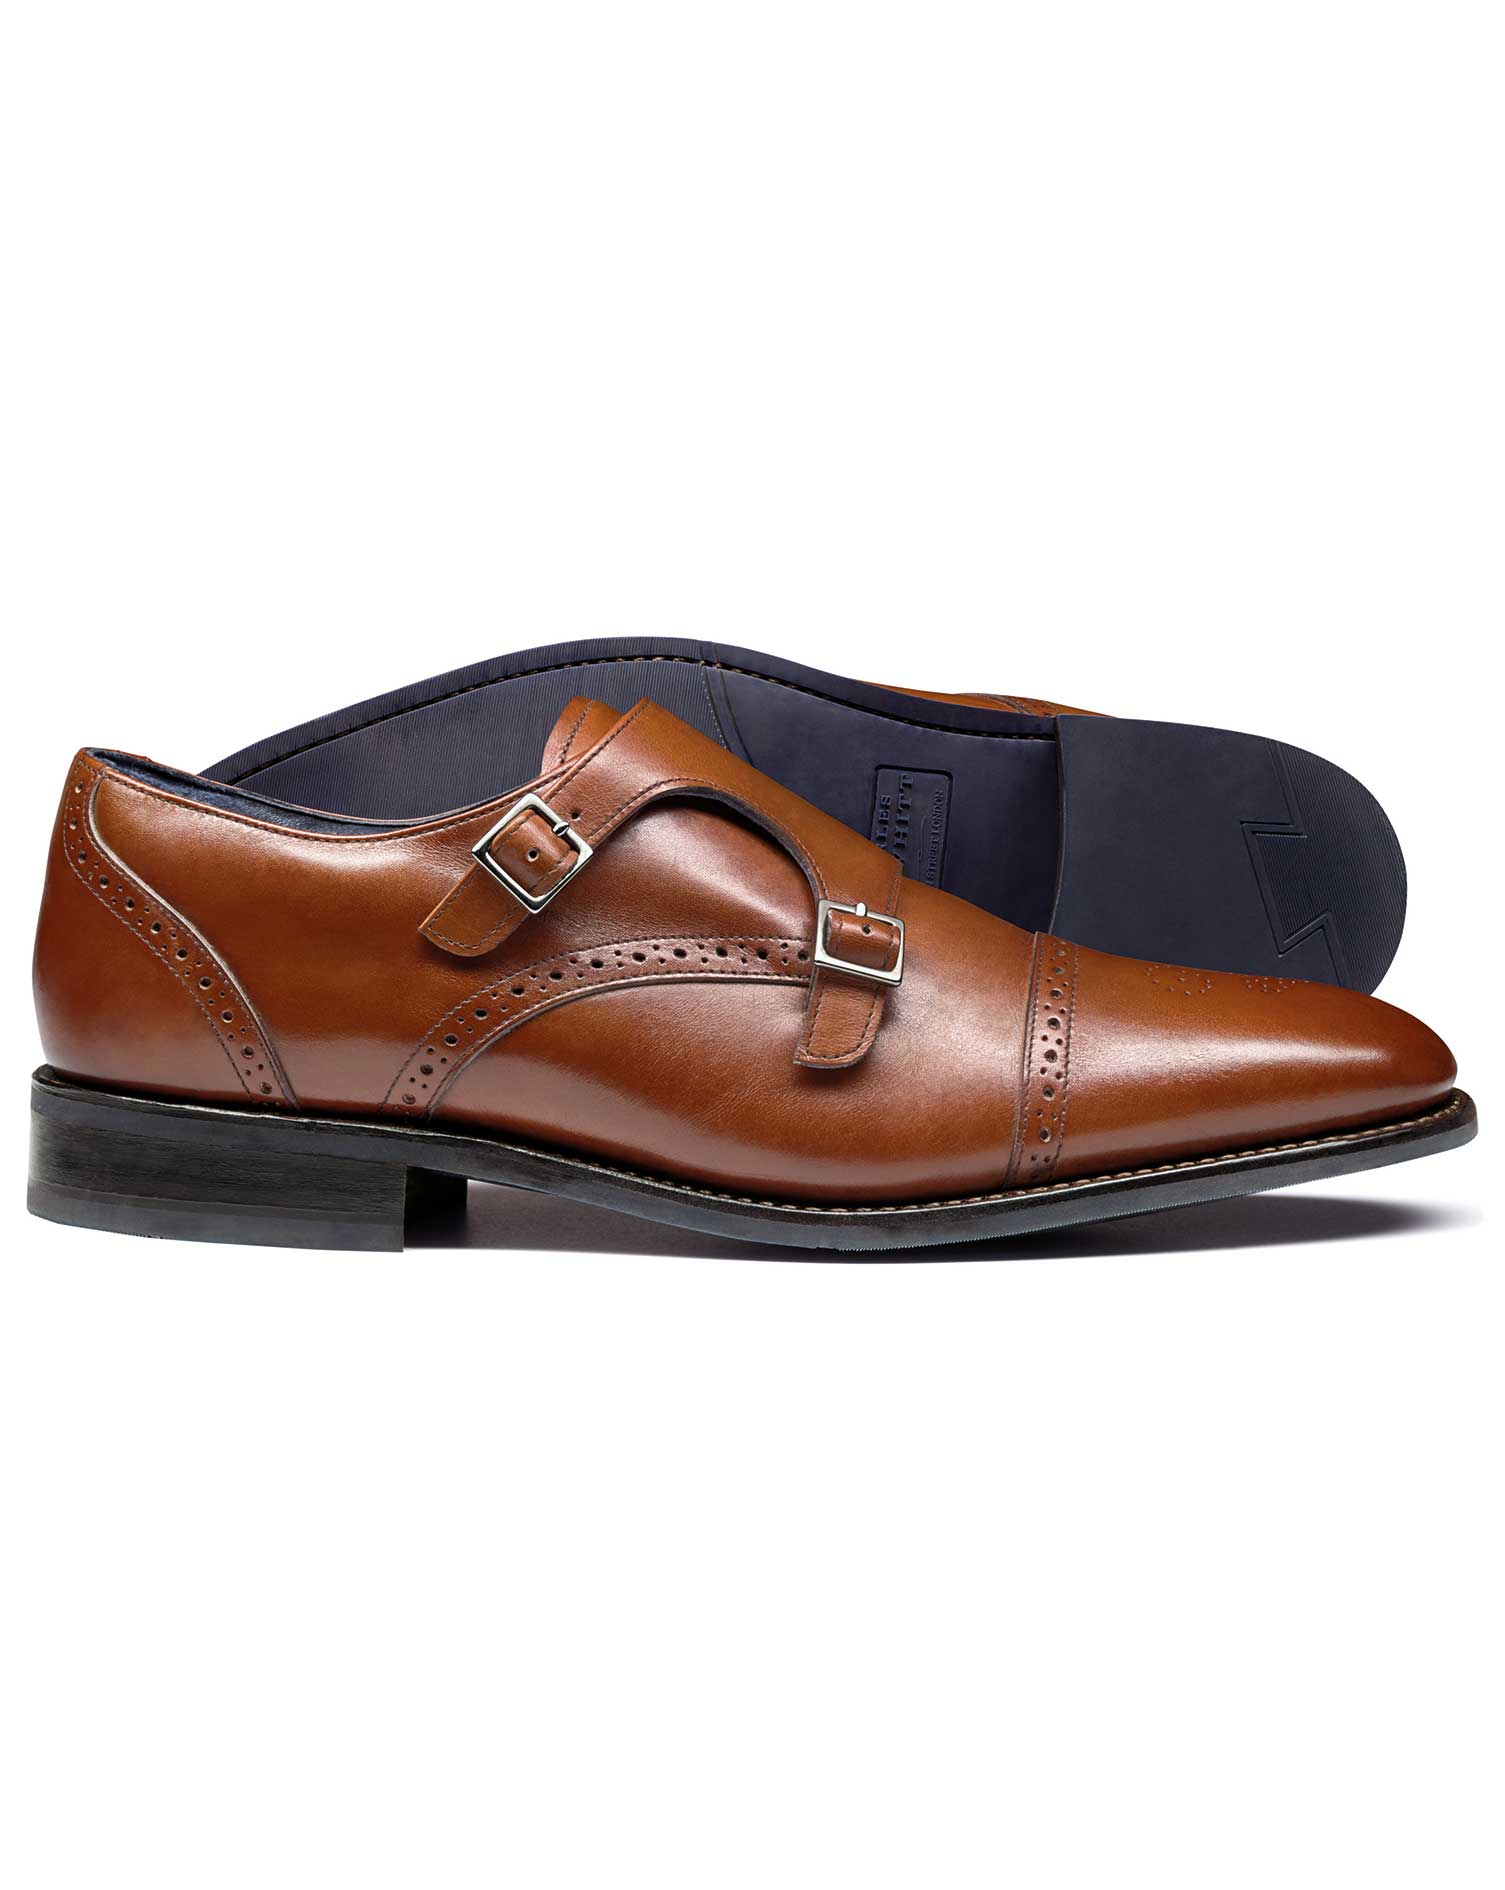 Tan Goodyear Welted Double Buckle Monk Performance Shoe Size 8 R by Charles Tyrwhitt